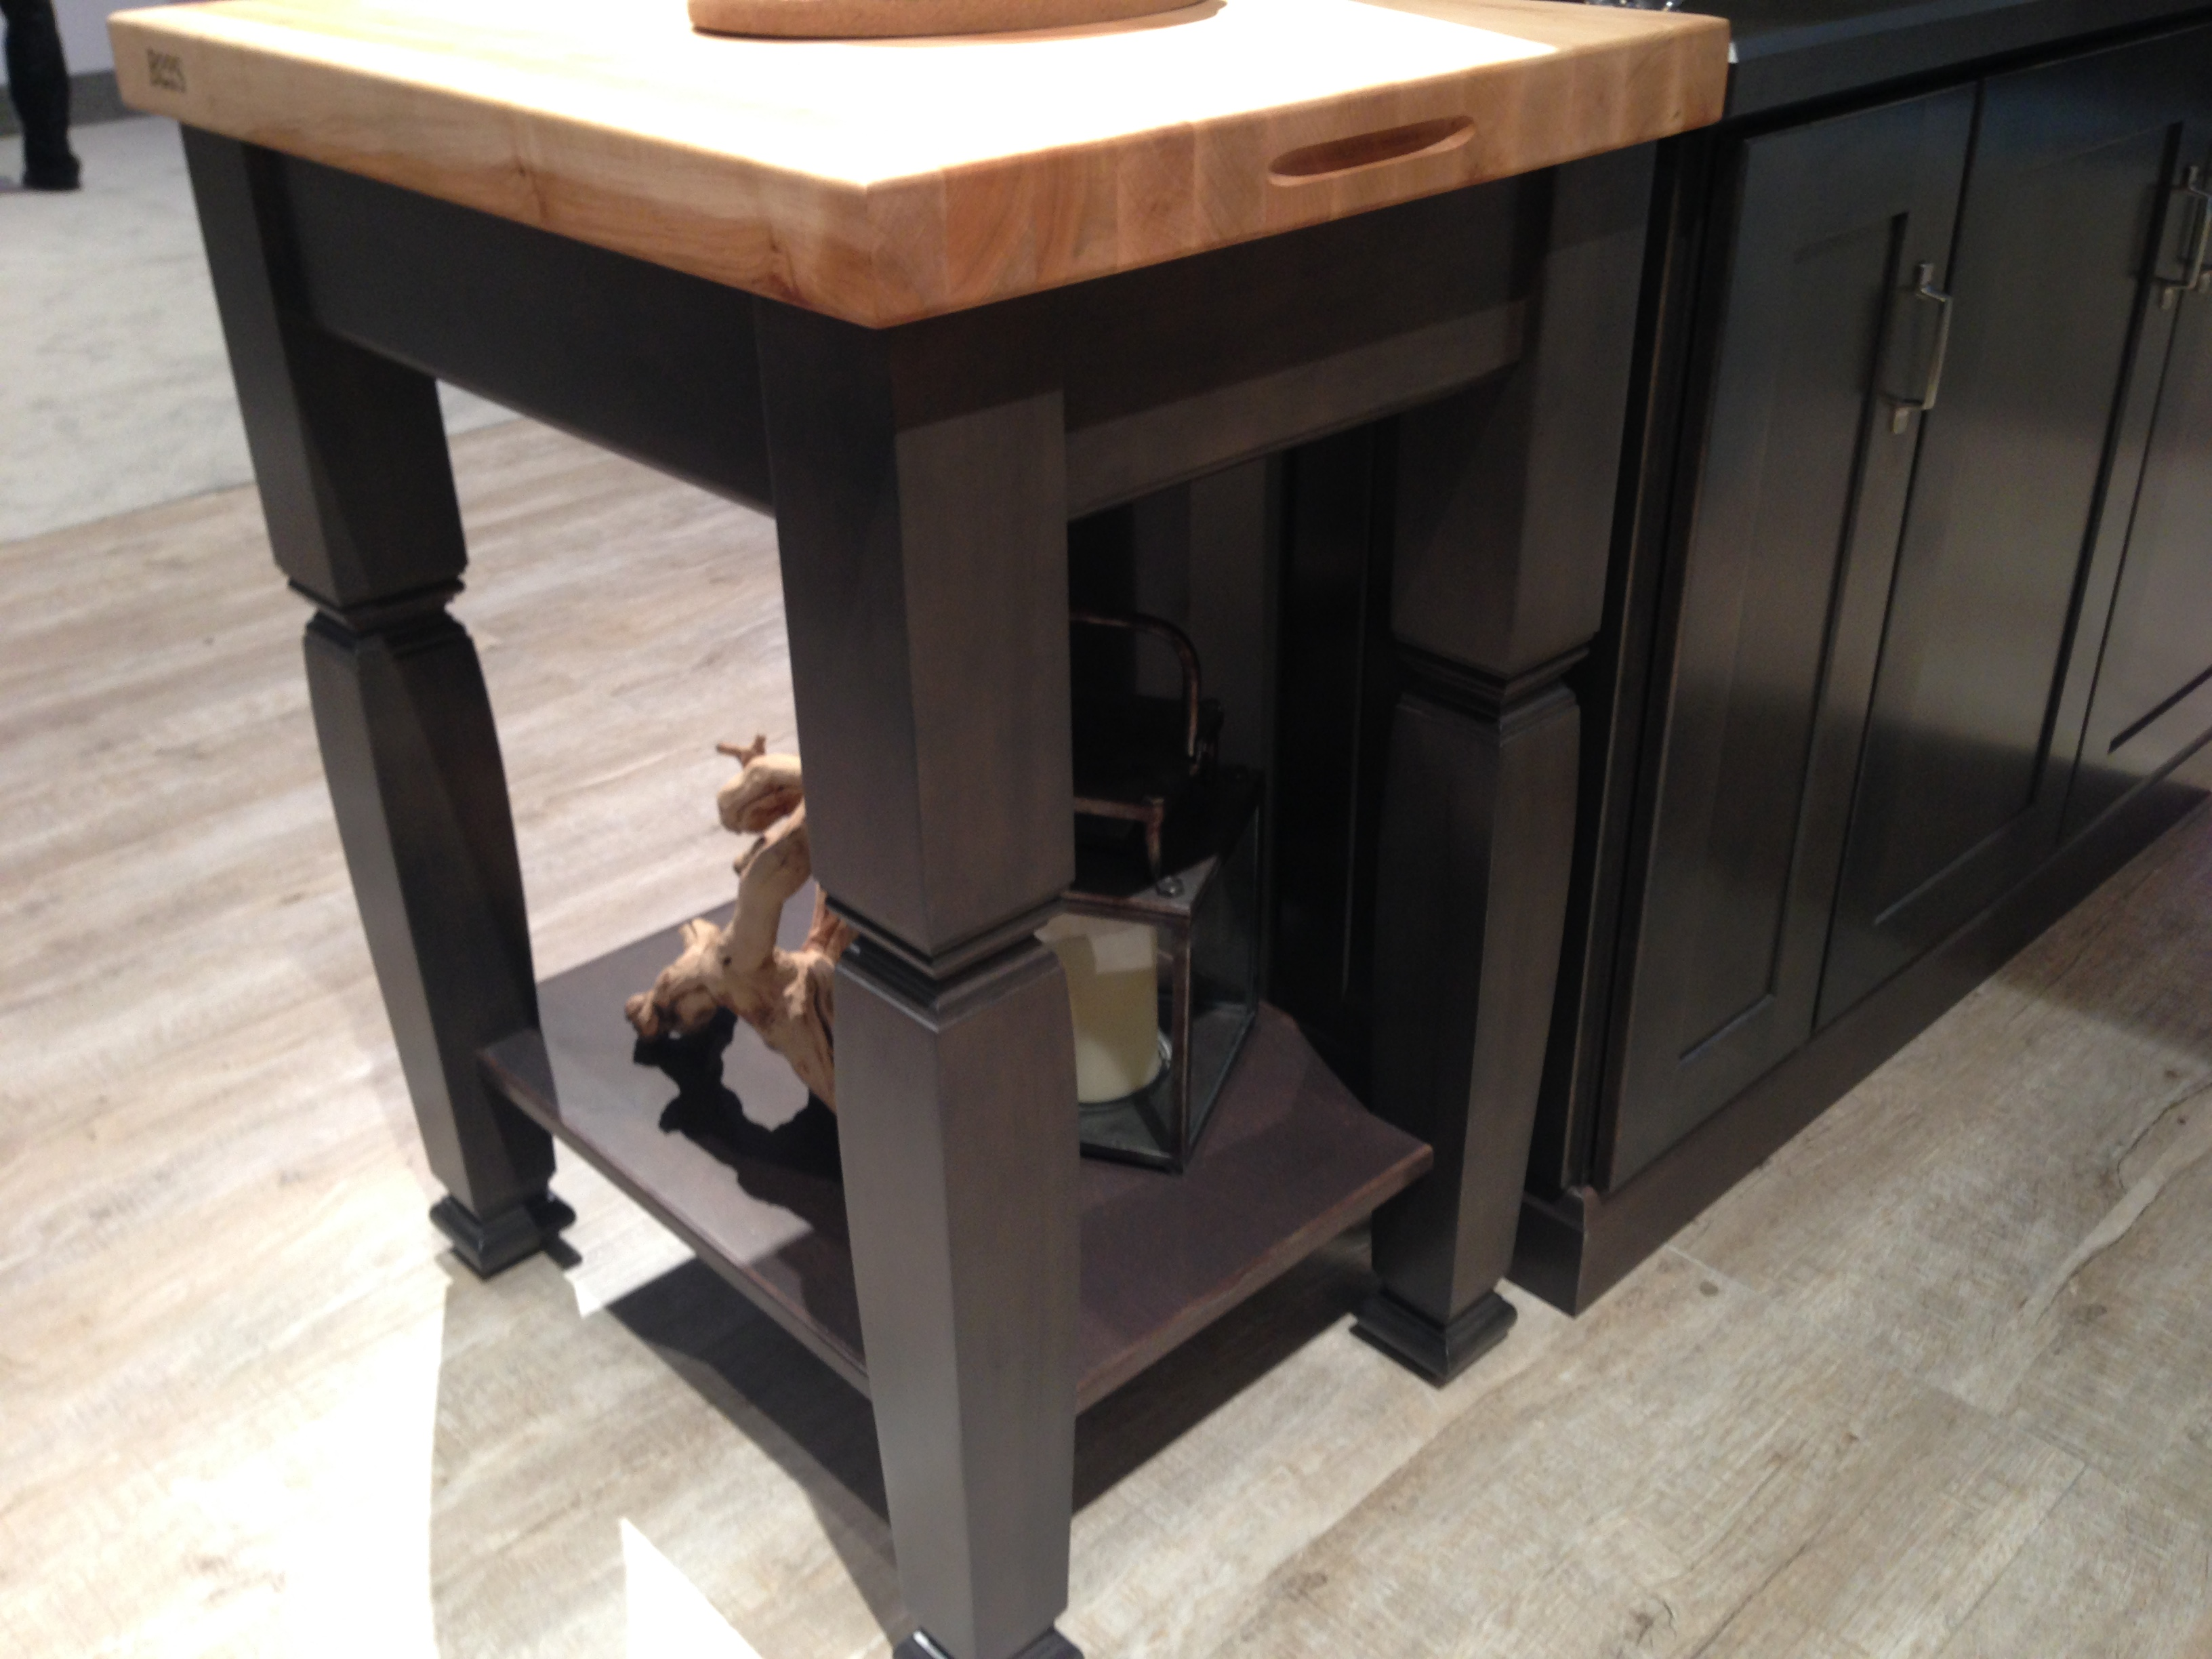 Ibs Kbis 2015 Day 1 Product Finds Builder Magazine